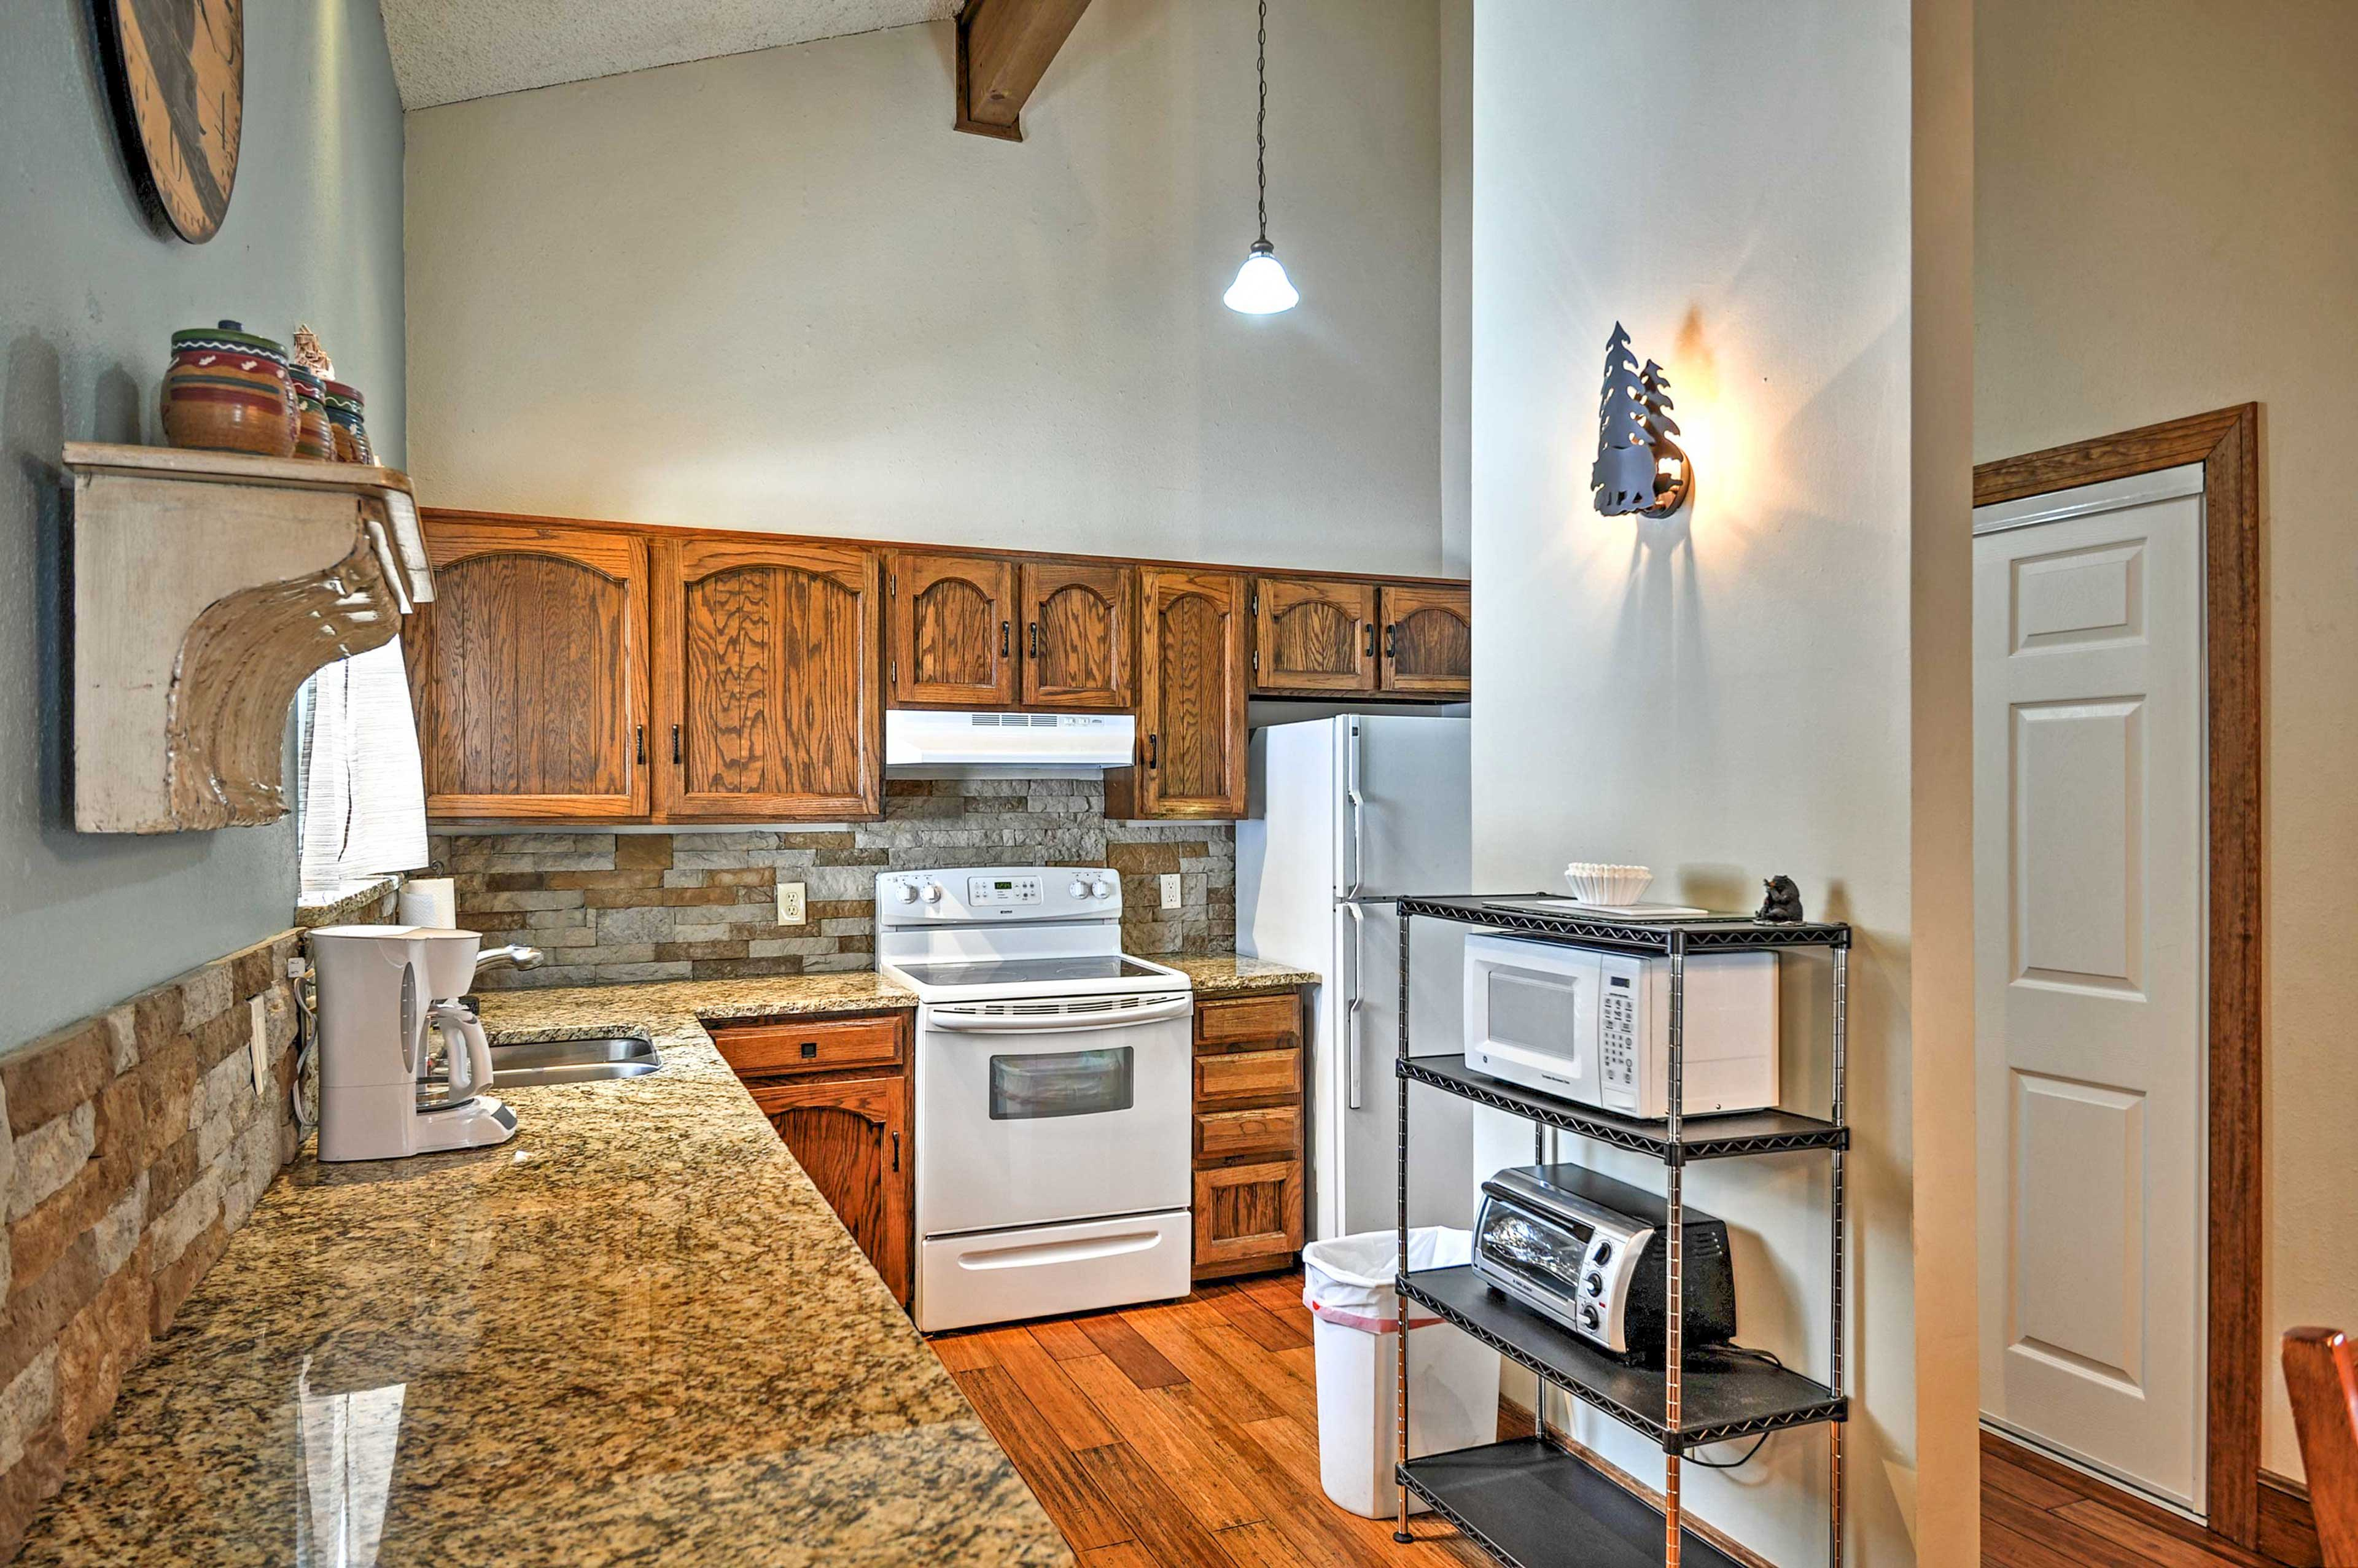 The kitchen features granite counters.